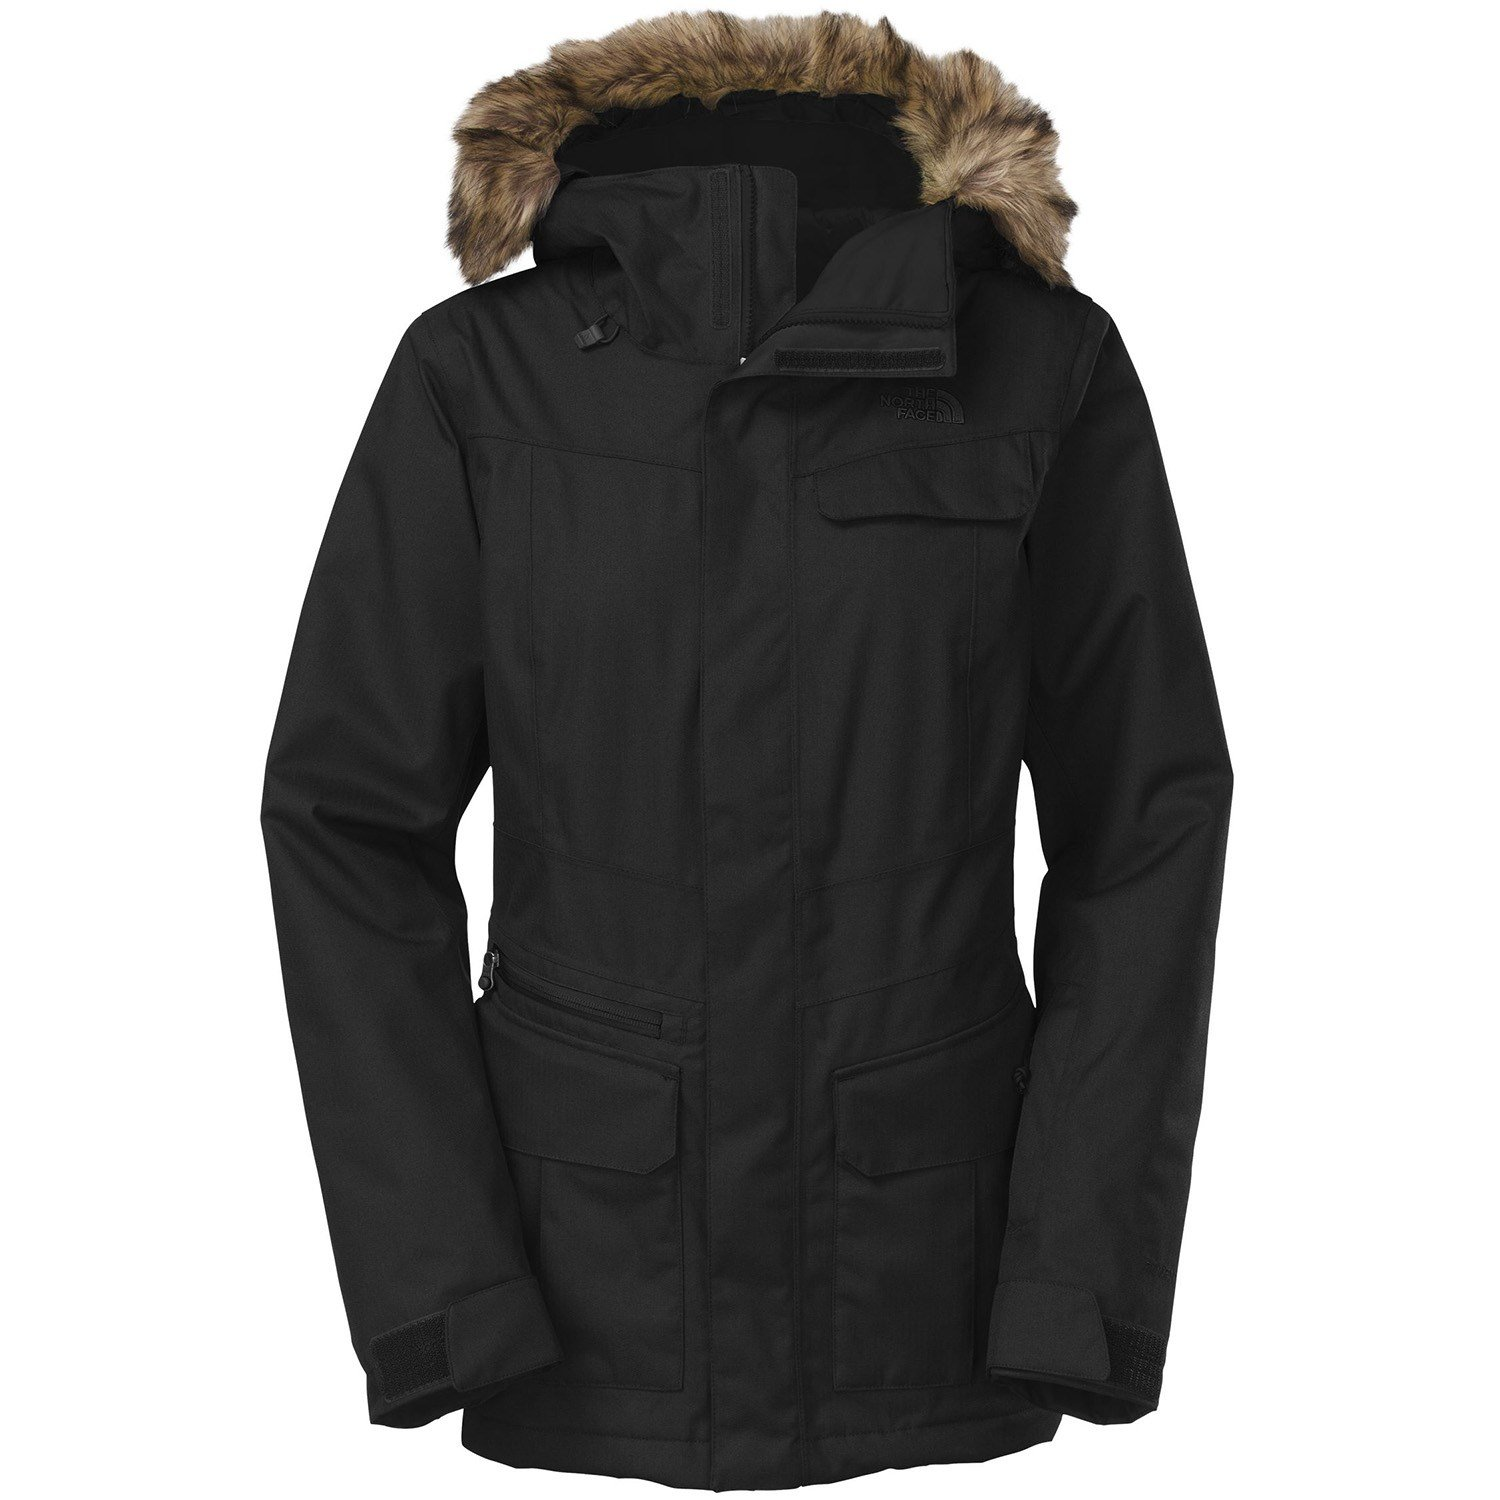 North Face Winter Womens Jackets - Best Jacket 2017